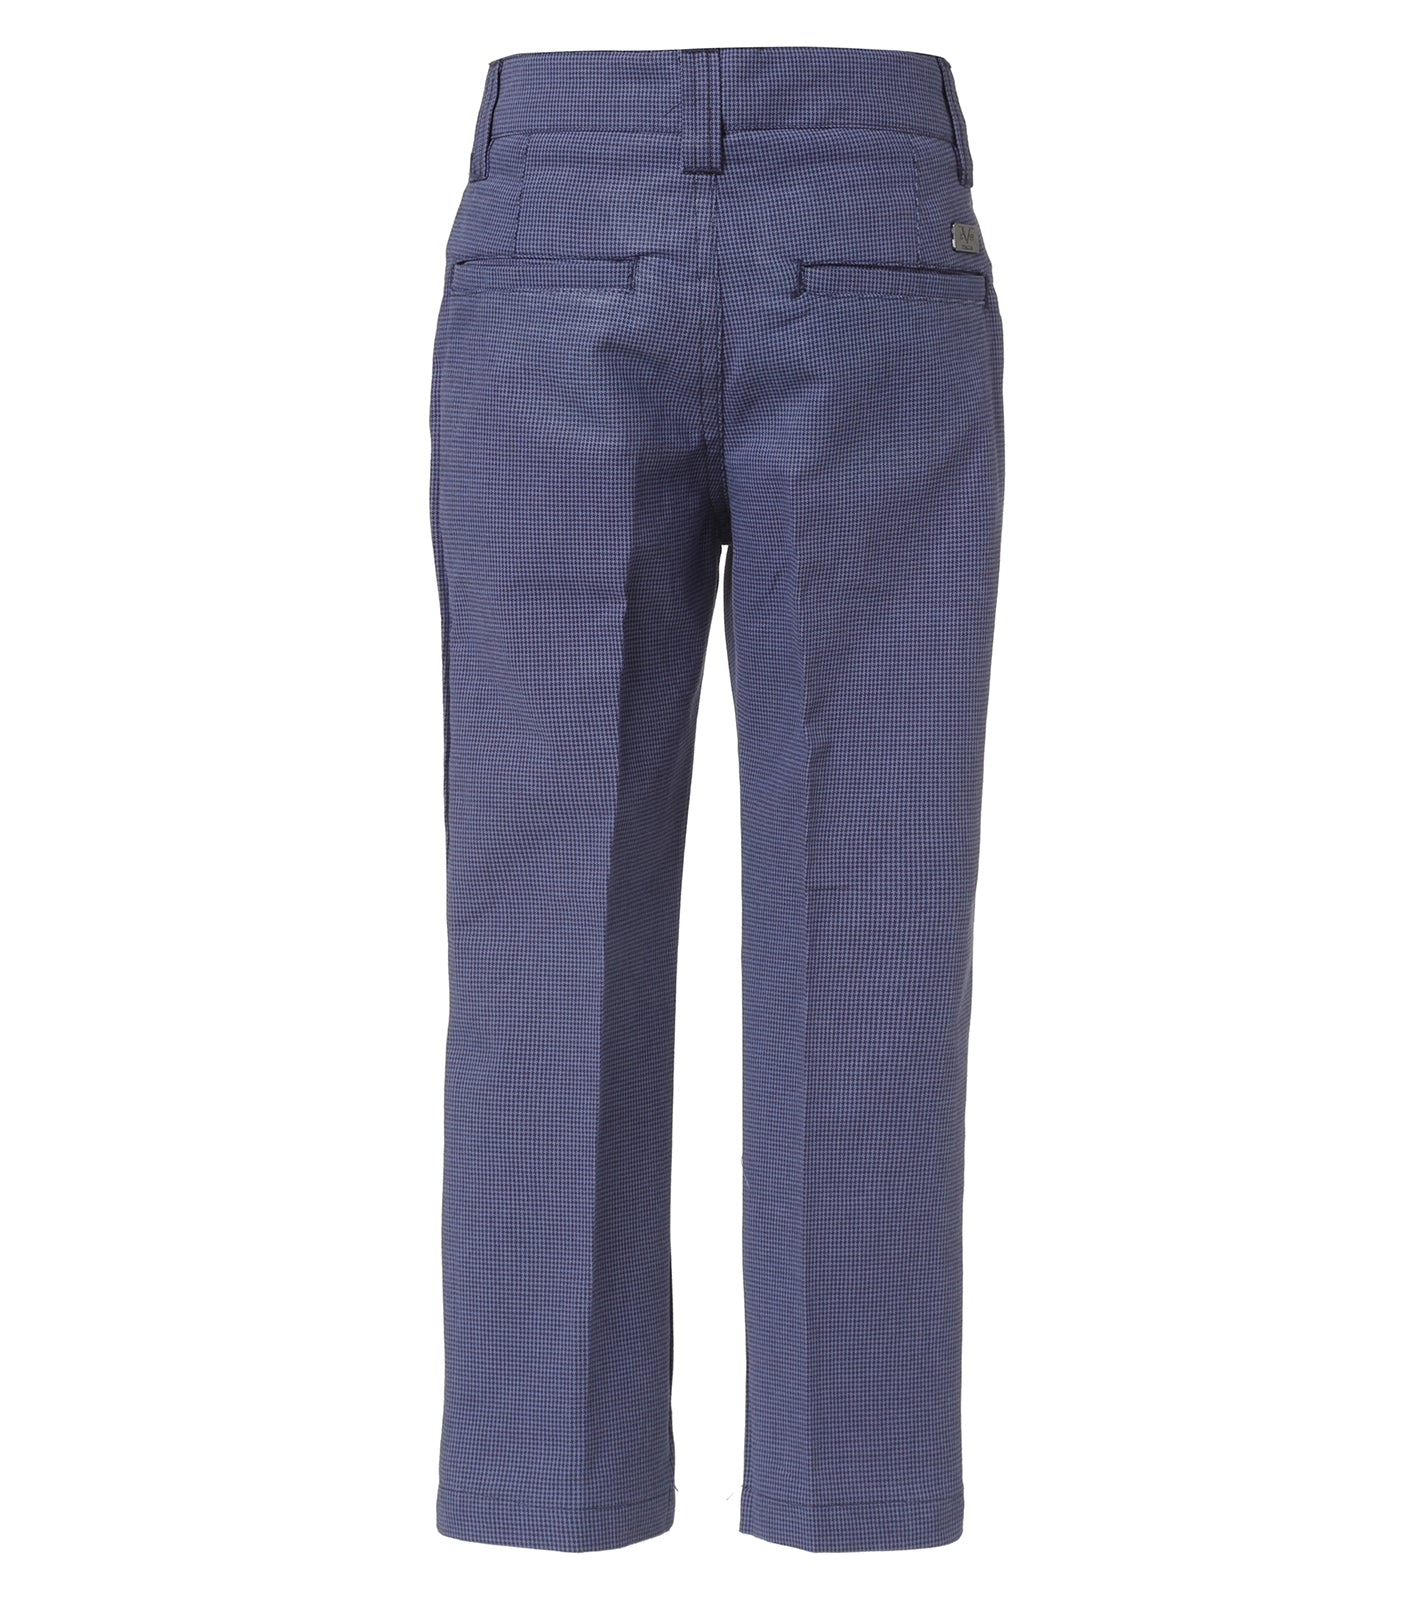 Subtle Blue Pants for boys